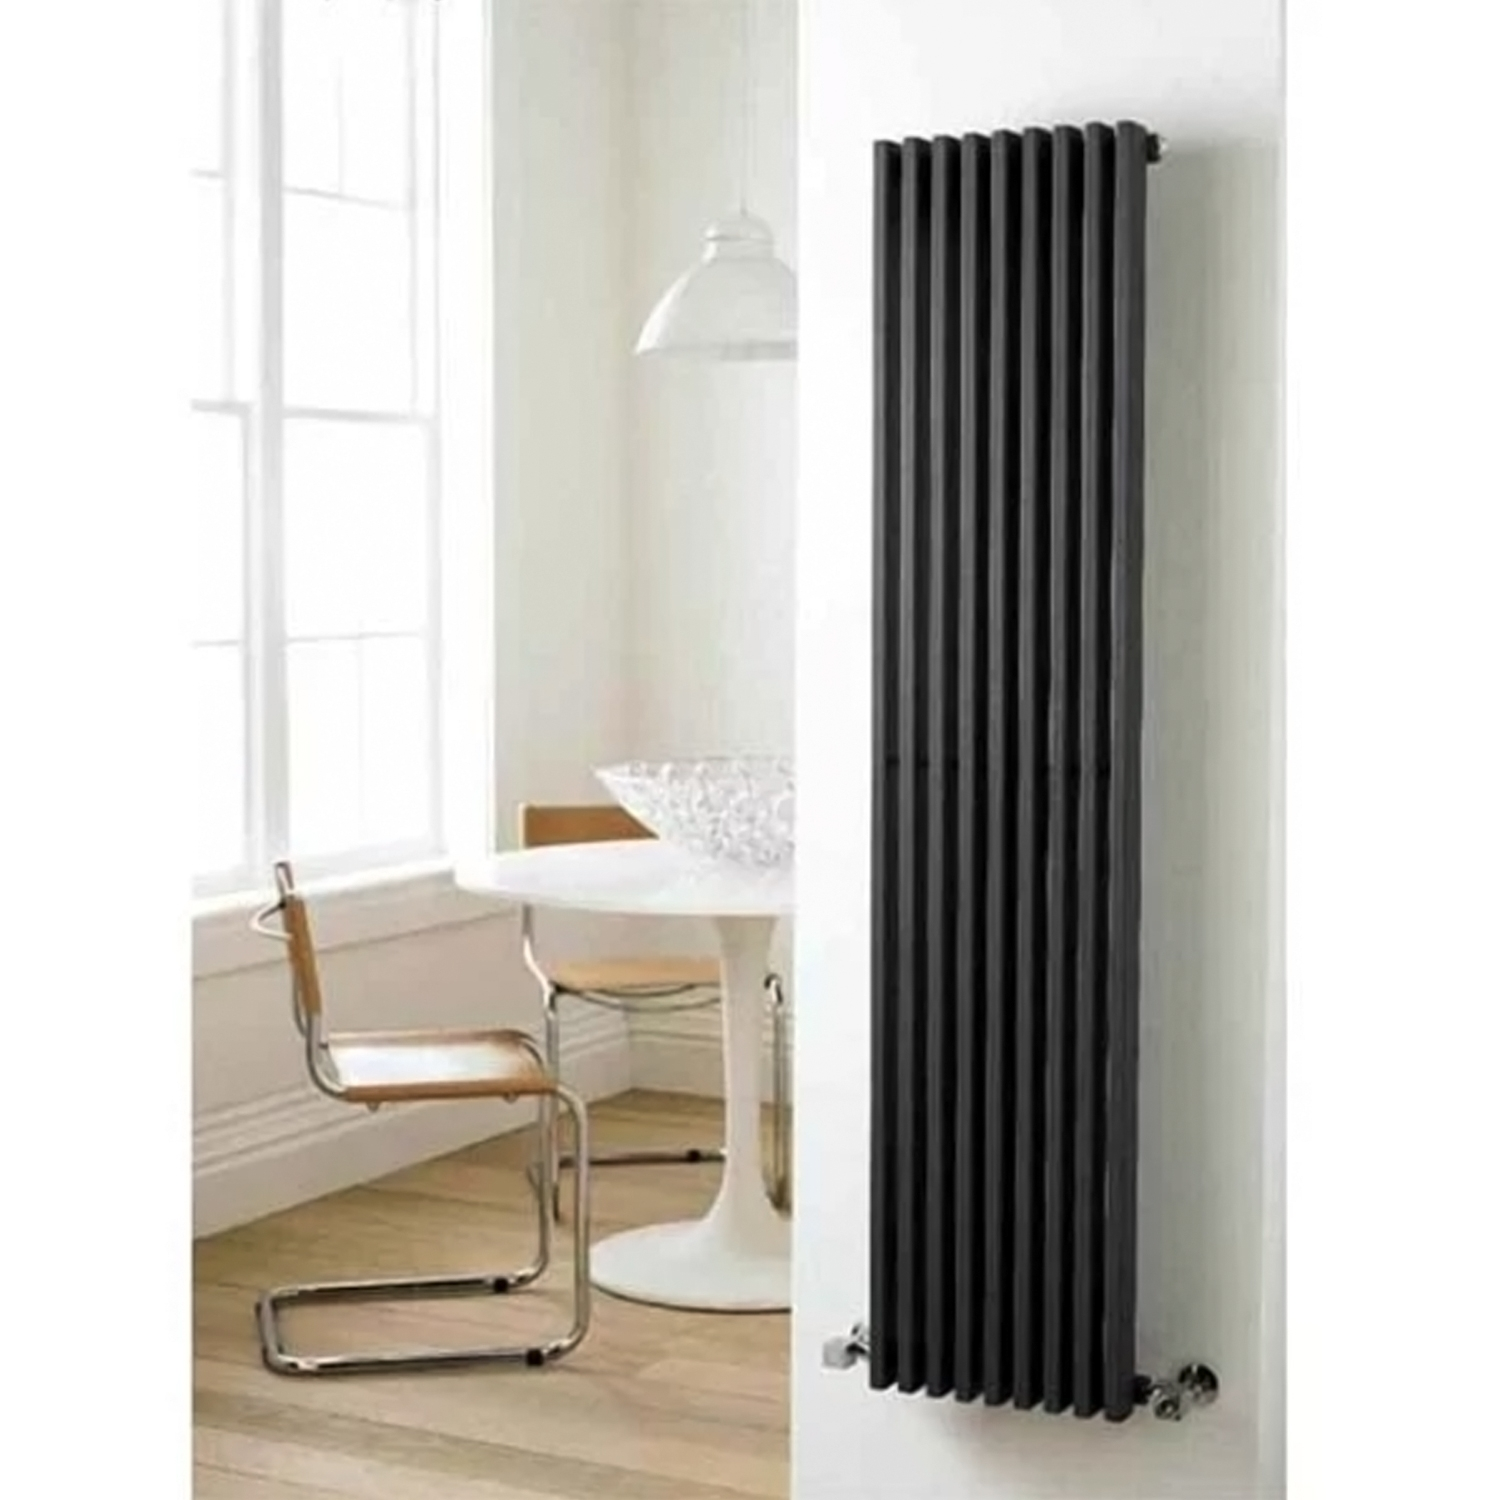 Hudson Reed Parallel Single Designer Vertical Radiator 1800mm H x 342mm W Gloss Black